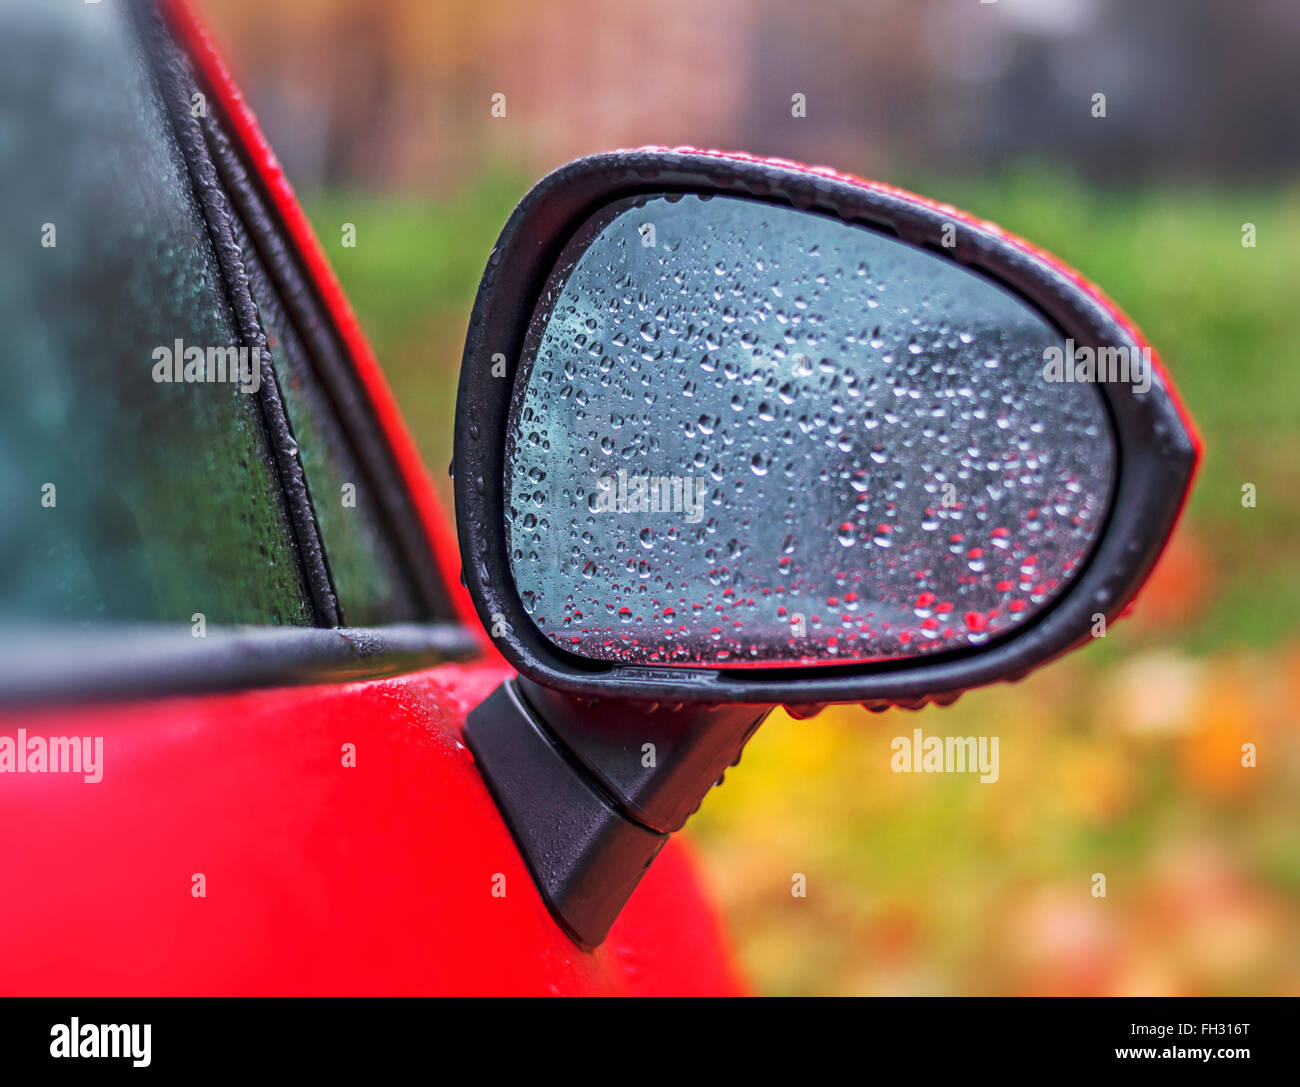 Outside car in the rain - Stock Image